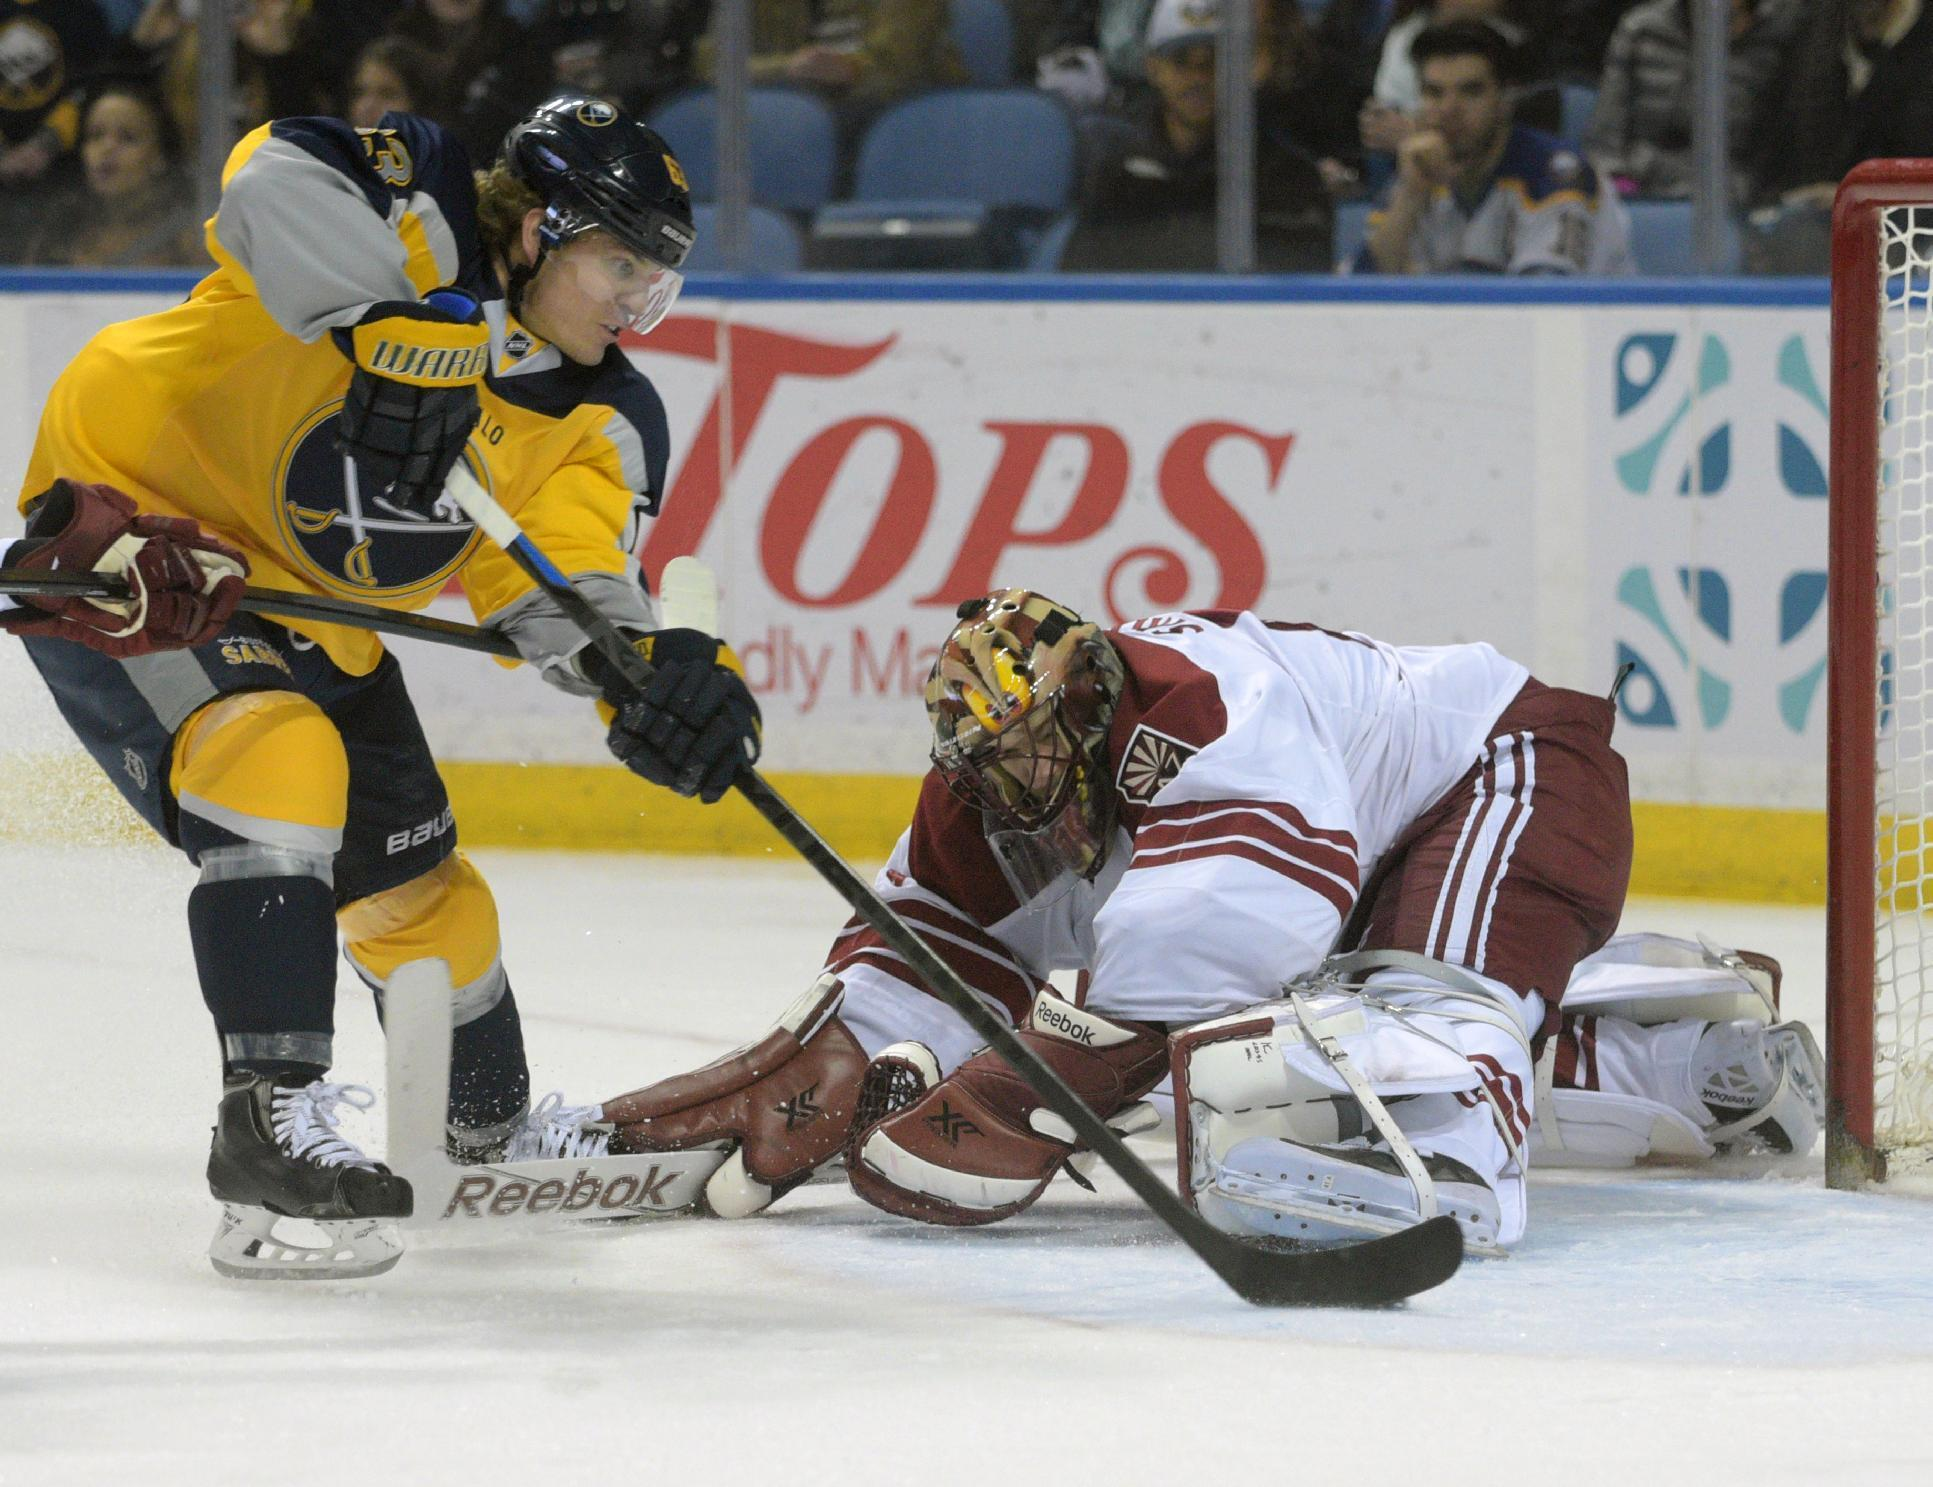 Sabres fans cheer as Gagner lifts Coyotes to 4-3 win in OT